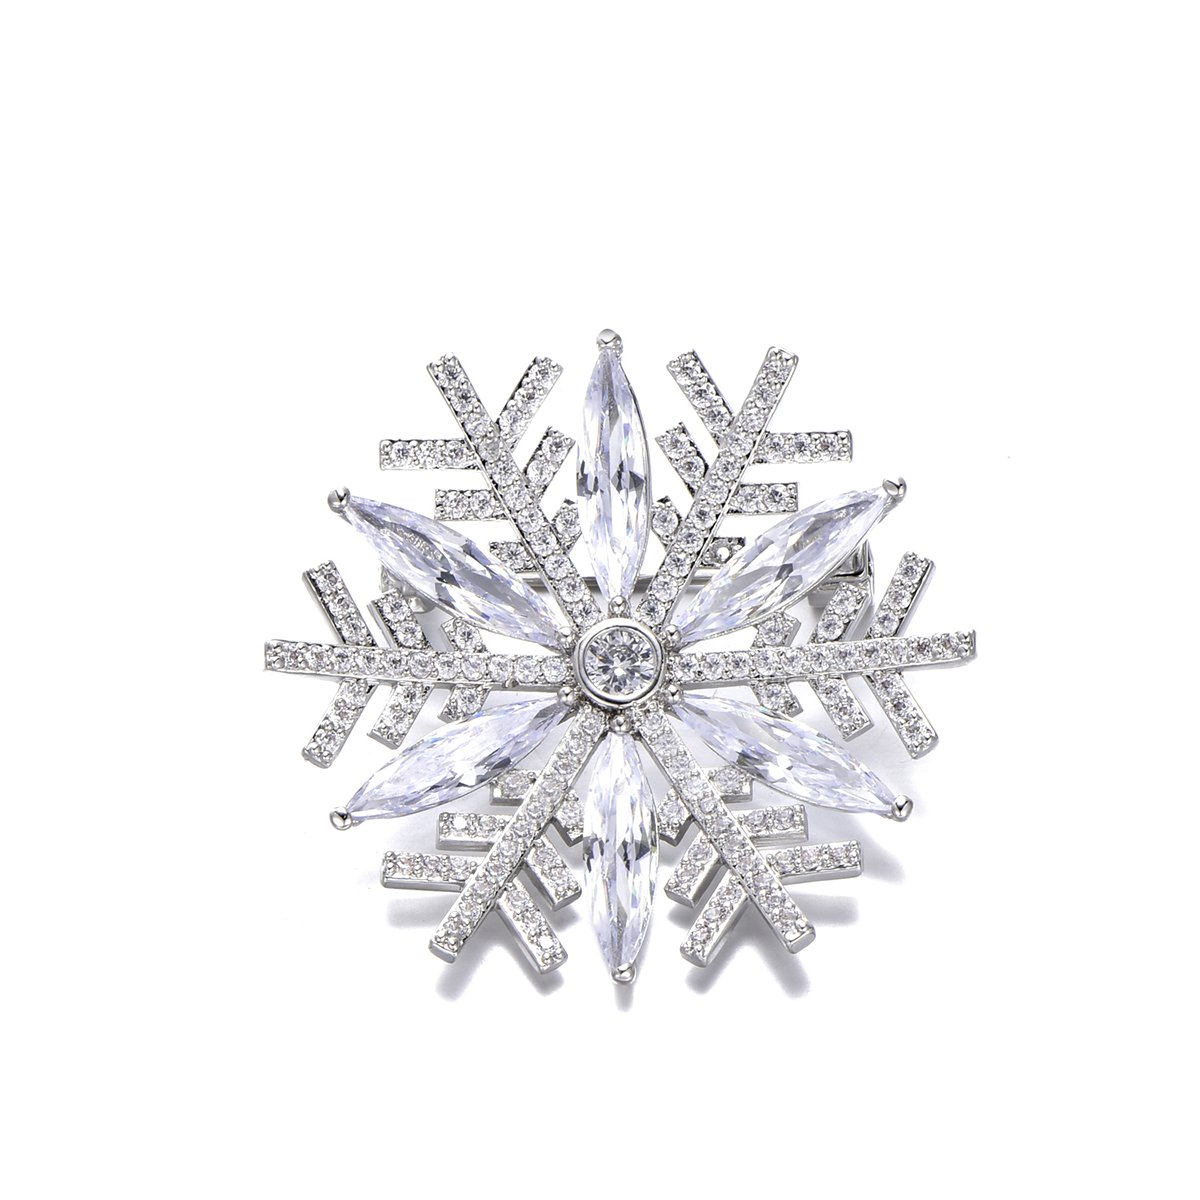 Snowflake Brooch Pins for Women,Dazzling Rhinestone Brooch for Brides Copper Vintage Crystal Brooch Girls CZ Brooch for Wedding,Party (Silver Plated Snowflake) by YOYOMA (Image #1)